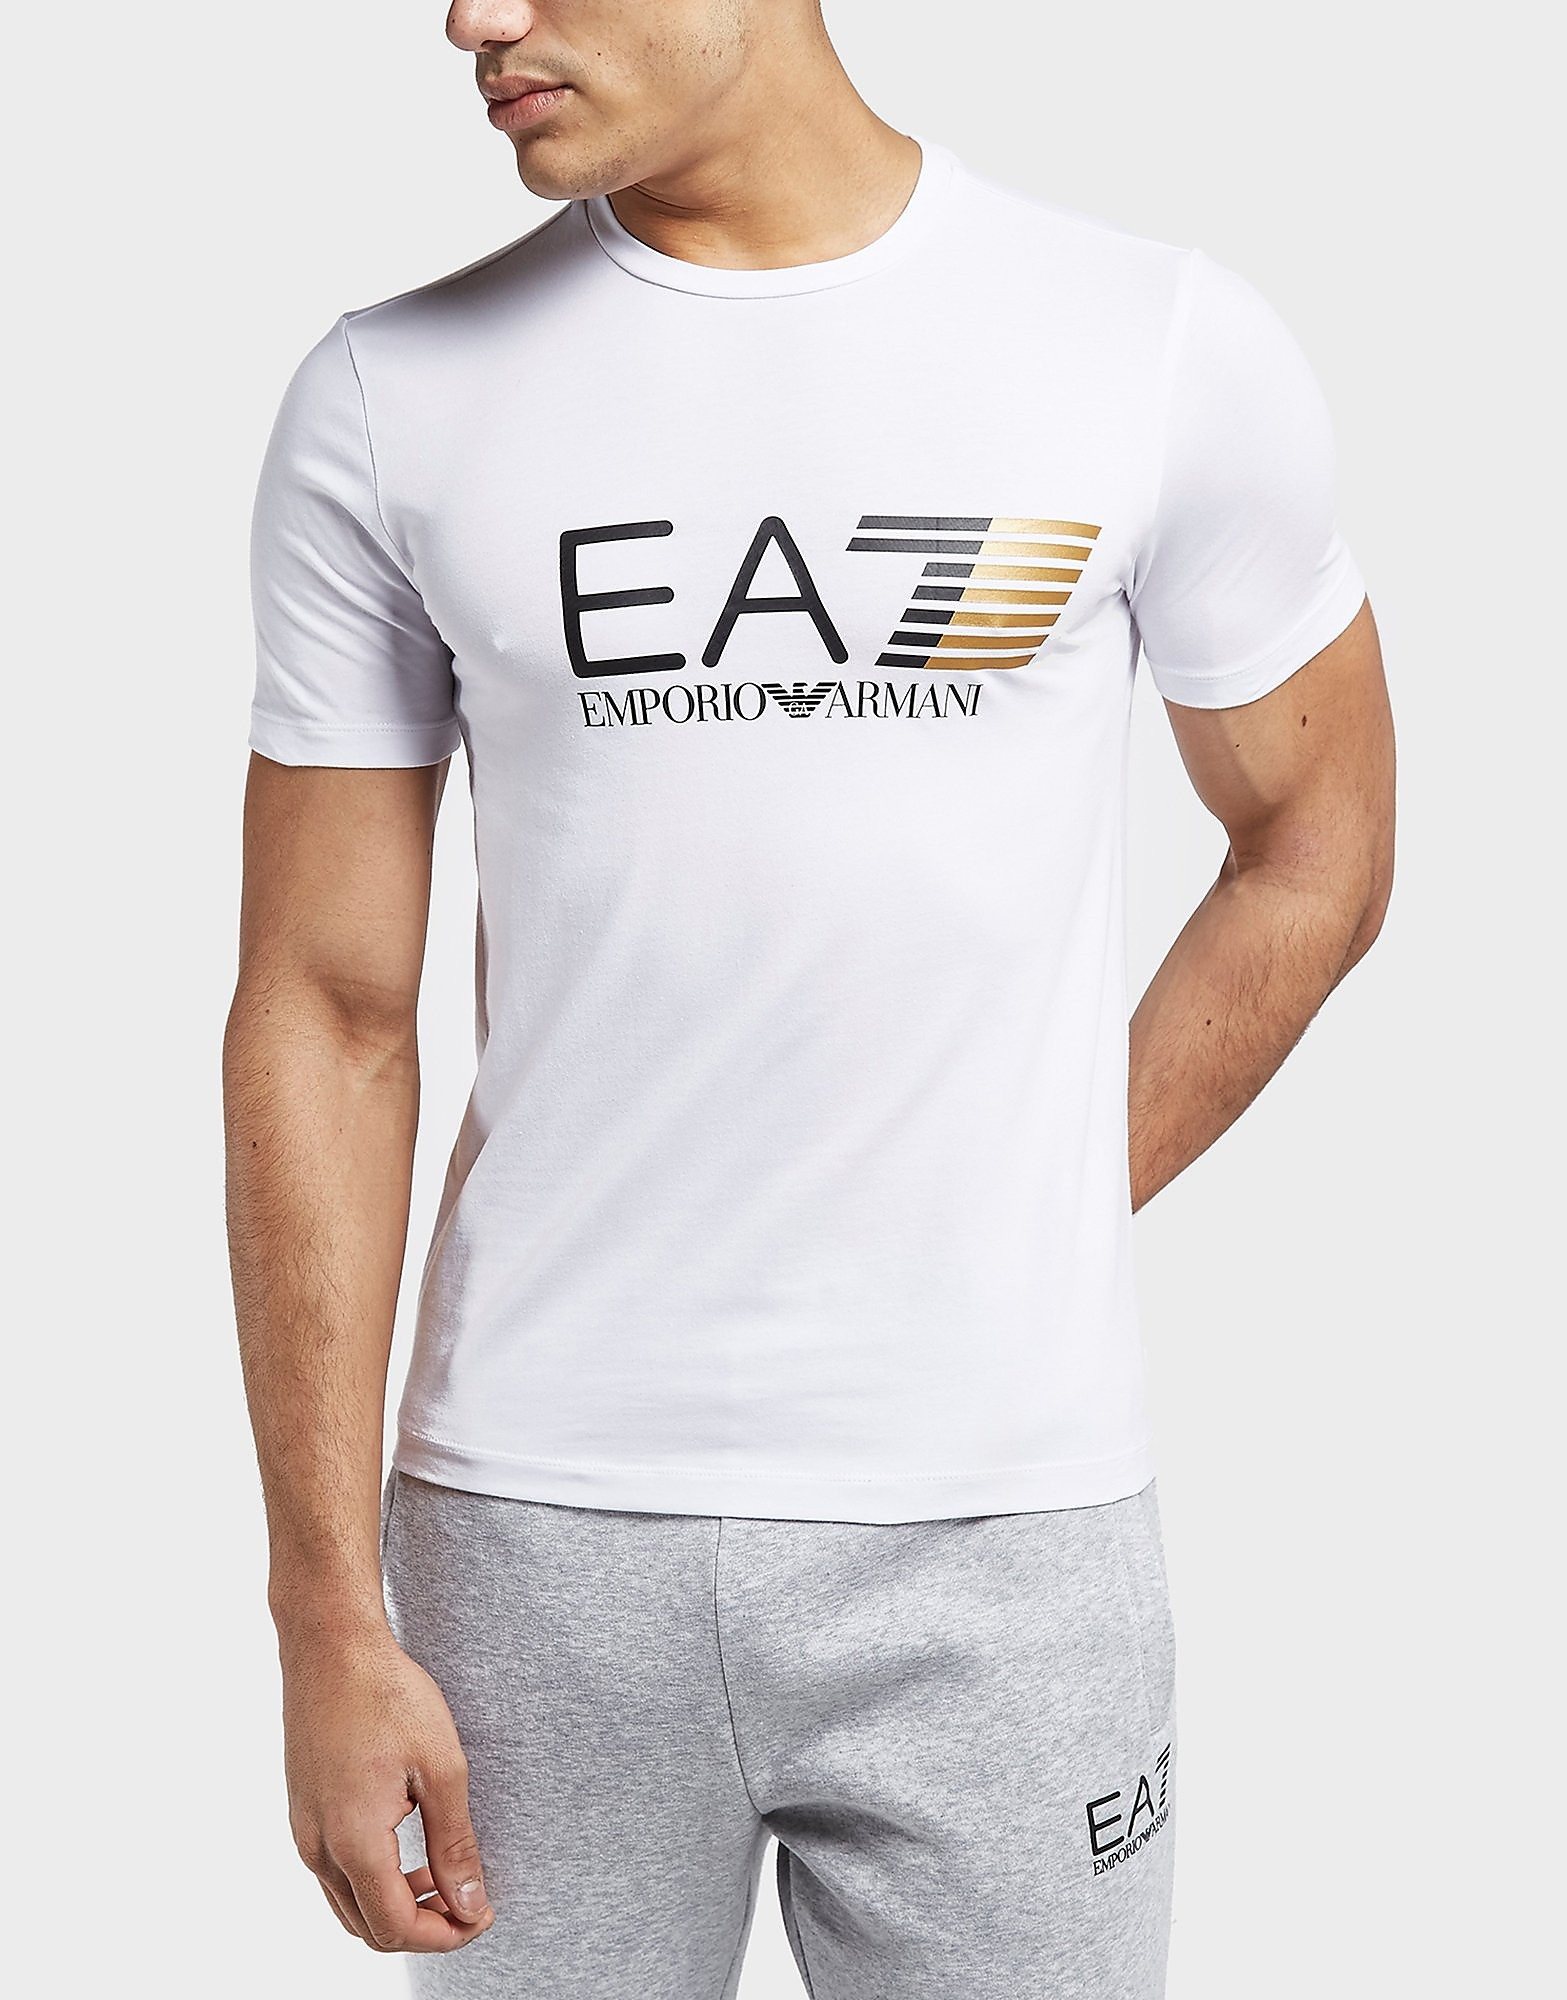 Emporio Armani EA7 Visibility Stretch Short Sleeve T-Shirt